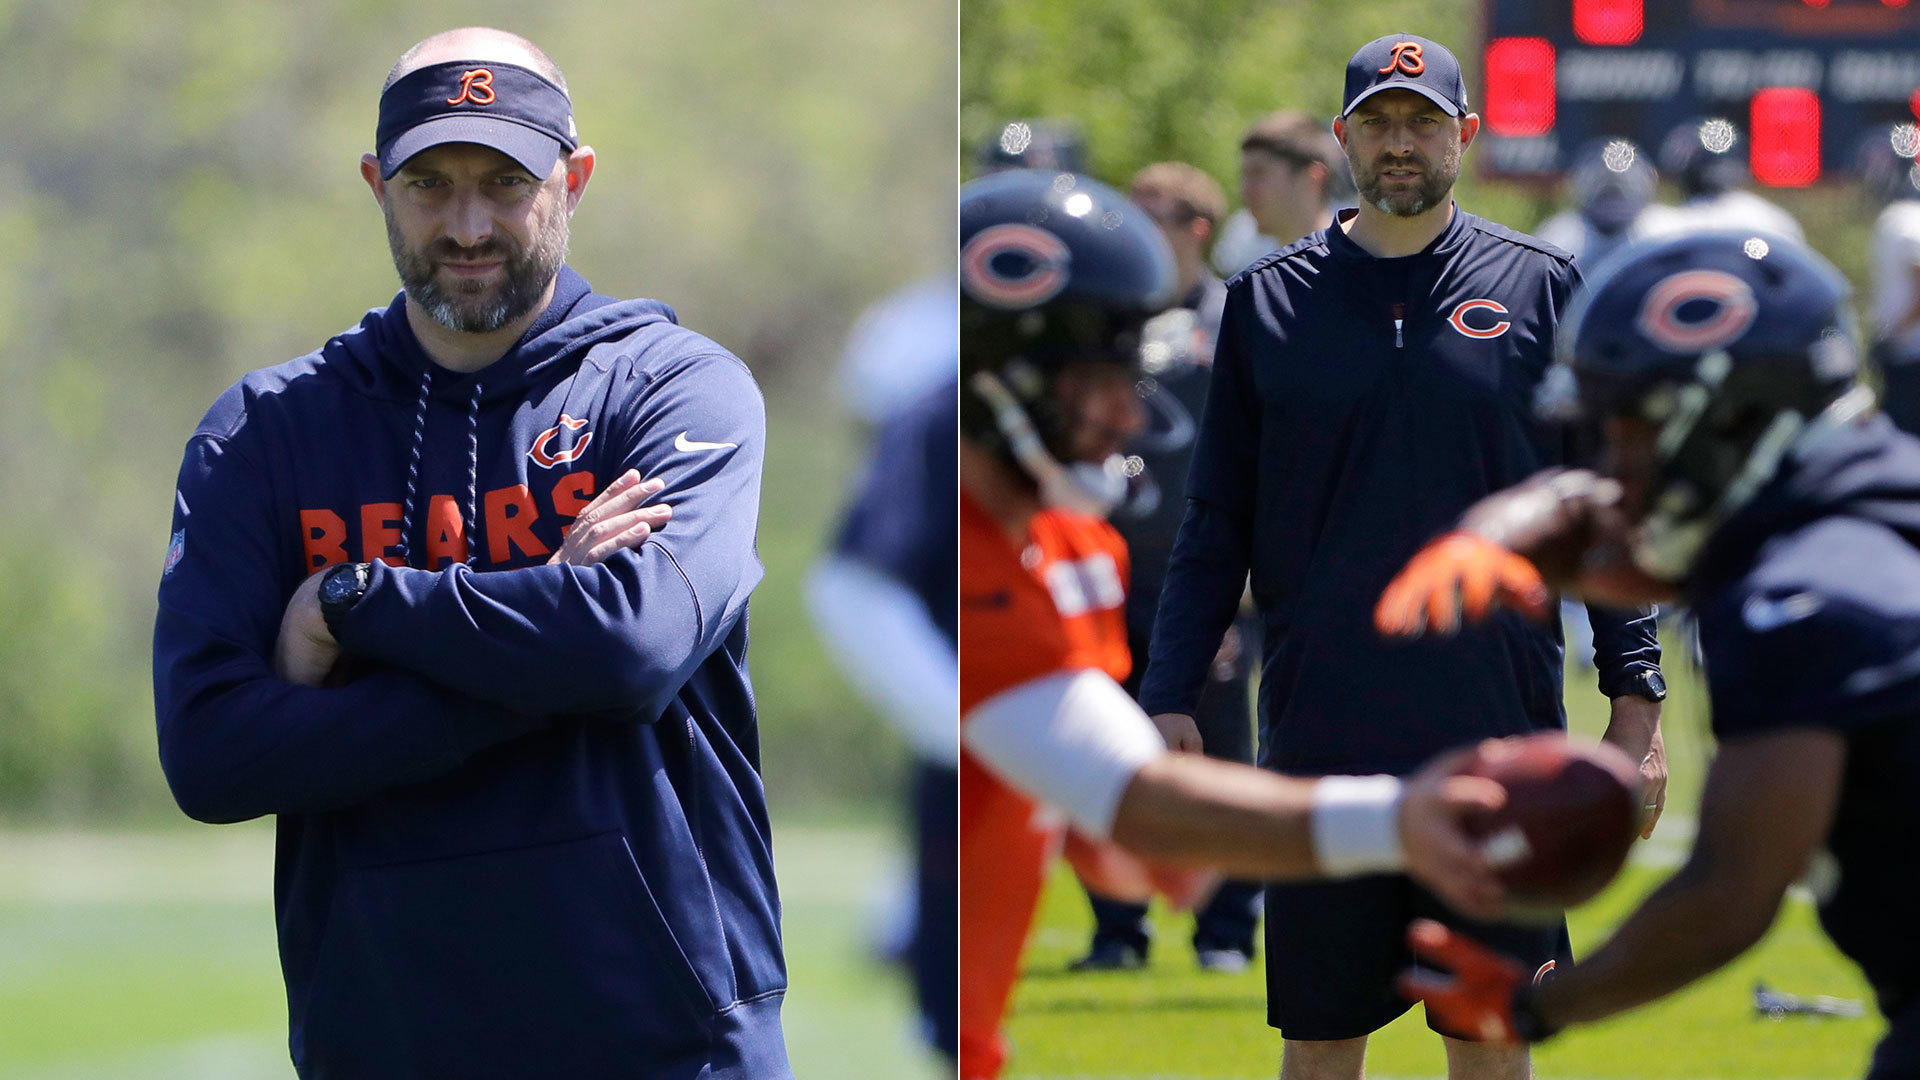 Ct-spt-bears-matt-nagy-bald-man-visor-20180524